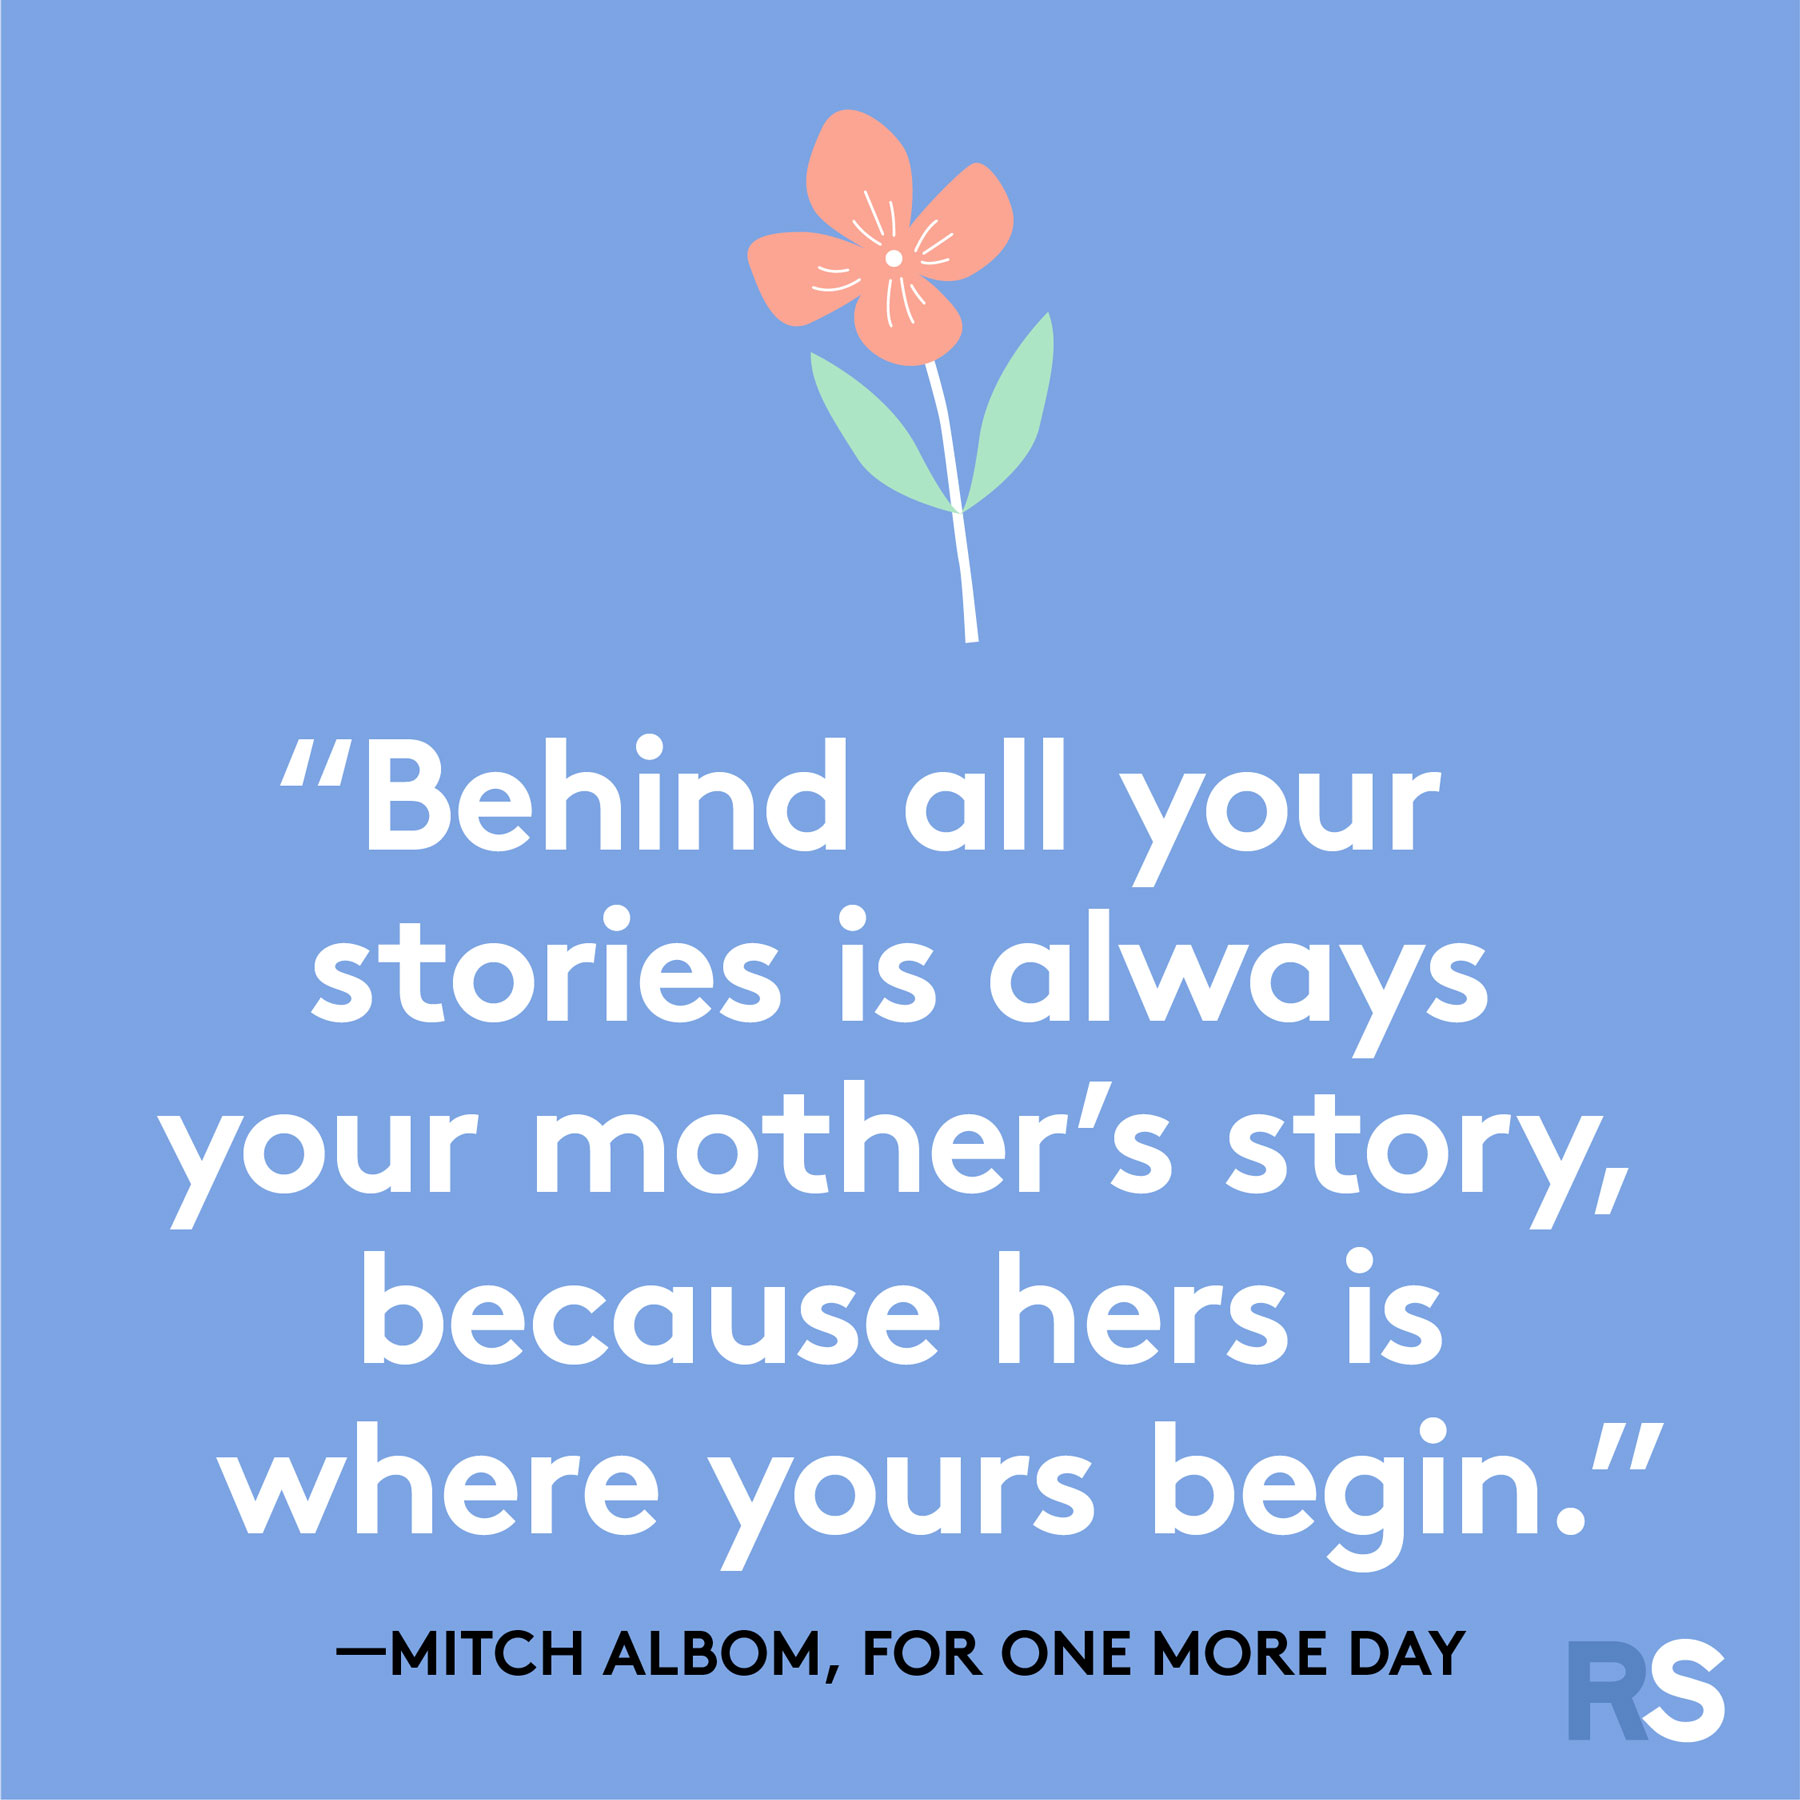 Mother's Day quotes and sayings - quote by Mitch Albom